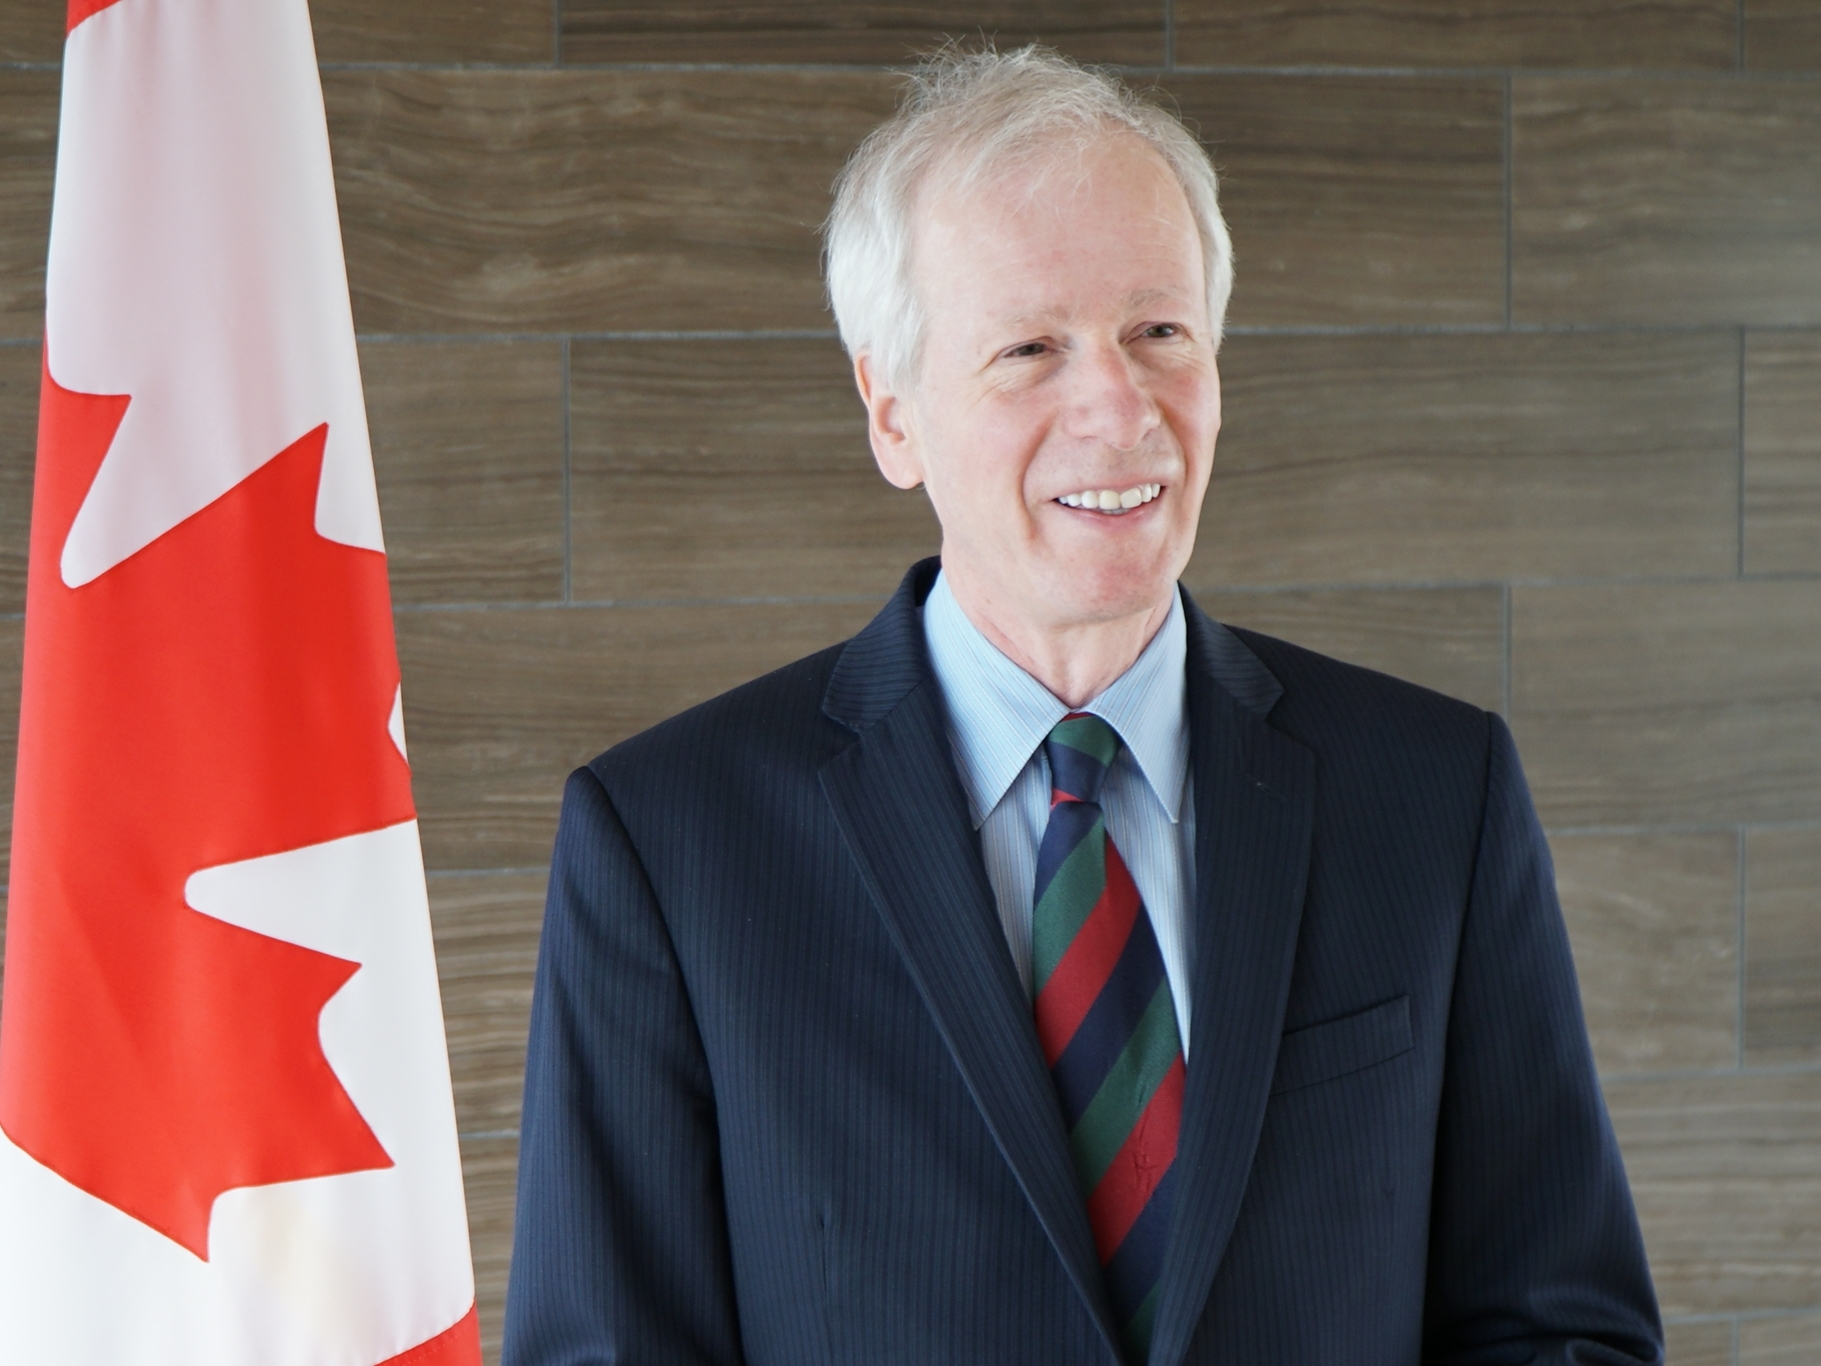 The Honourable Stéphane Dion, Ambassador-designate to Germany and Special Envoy to the European Union and Europe